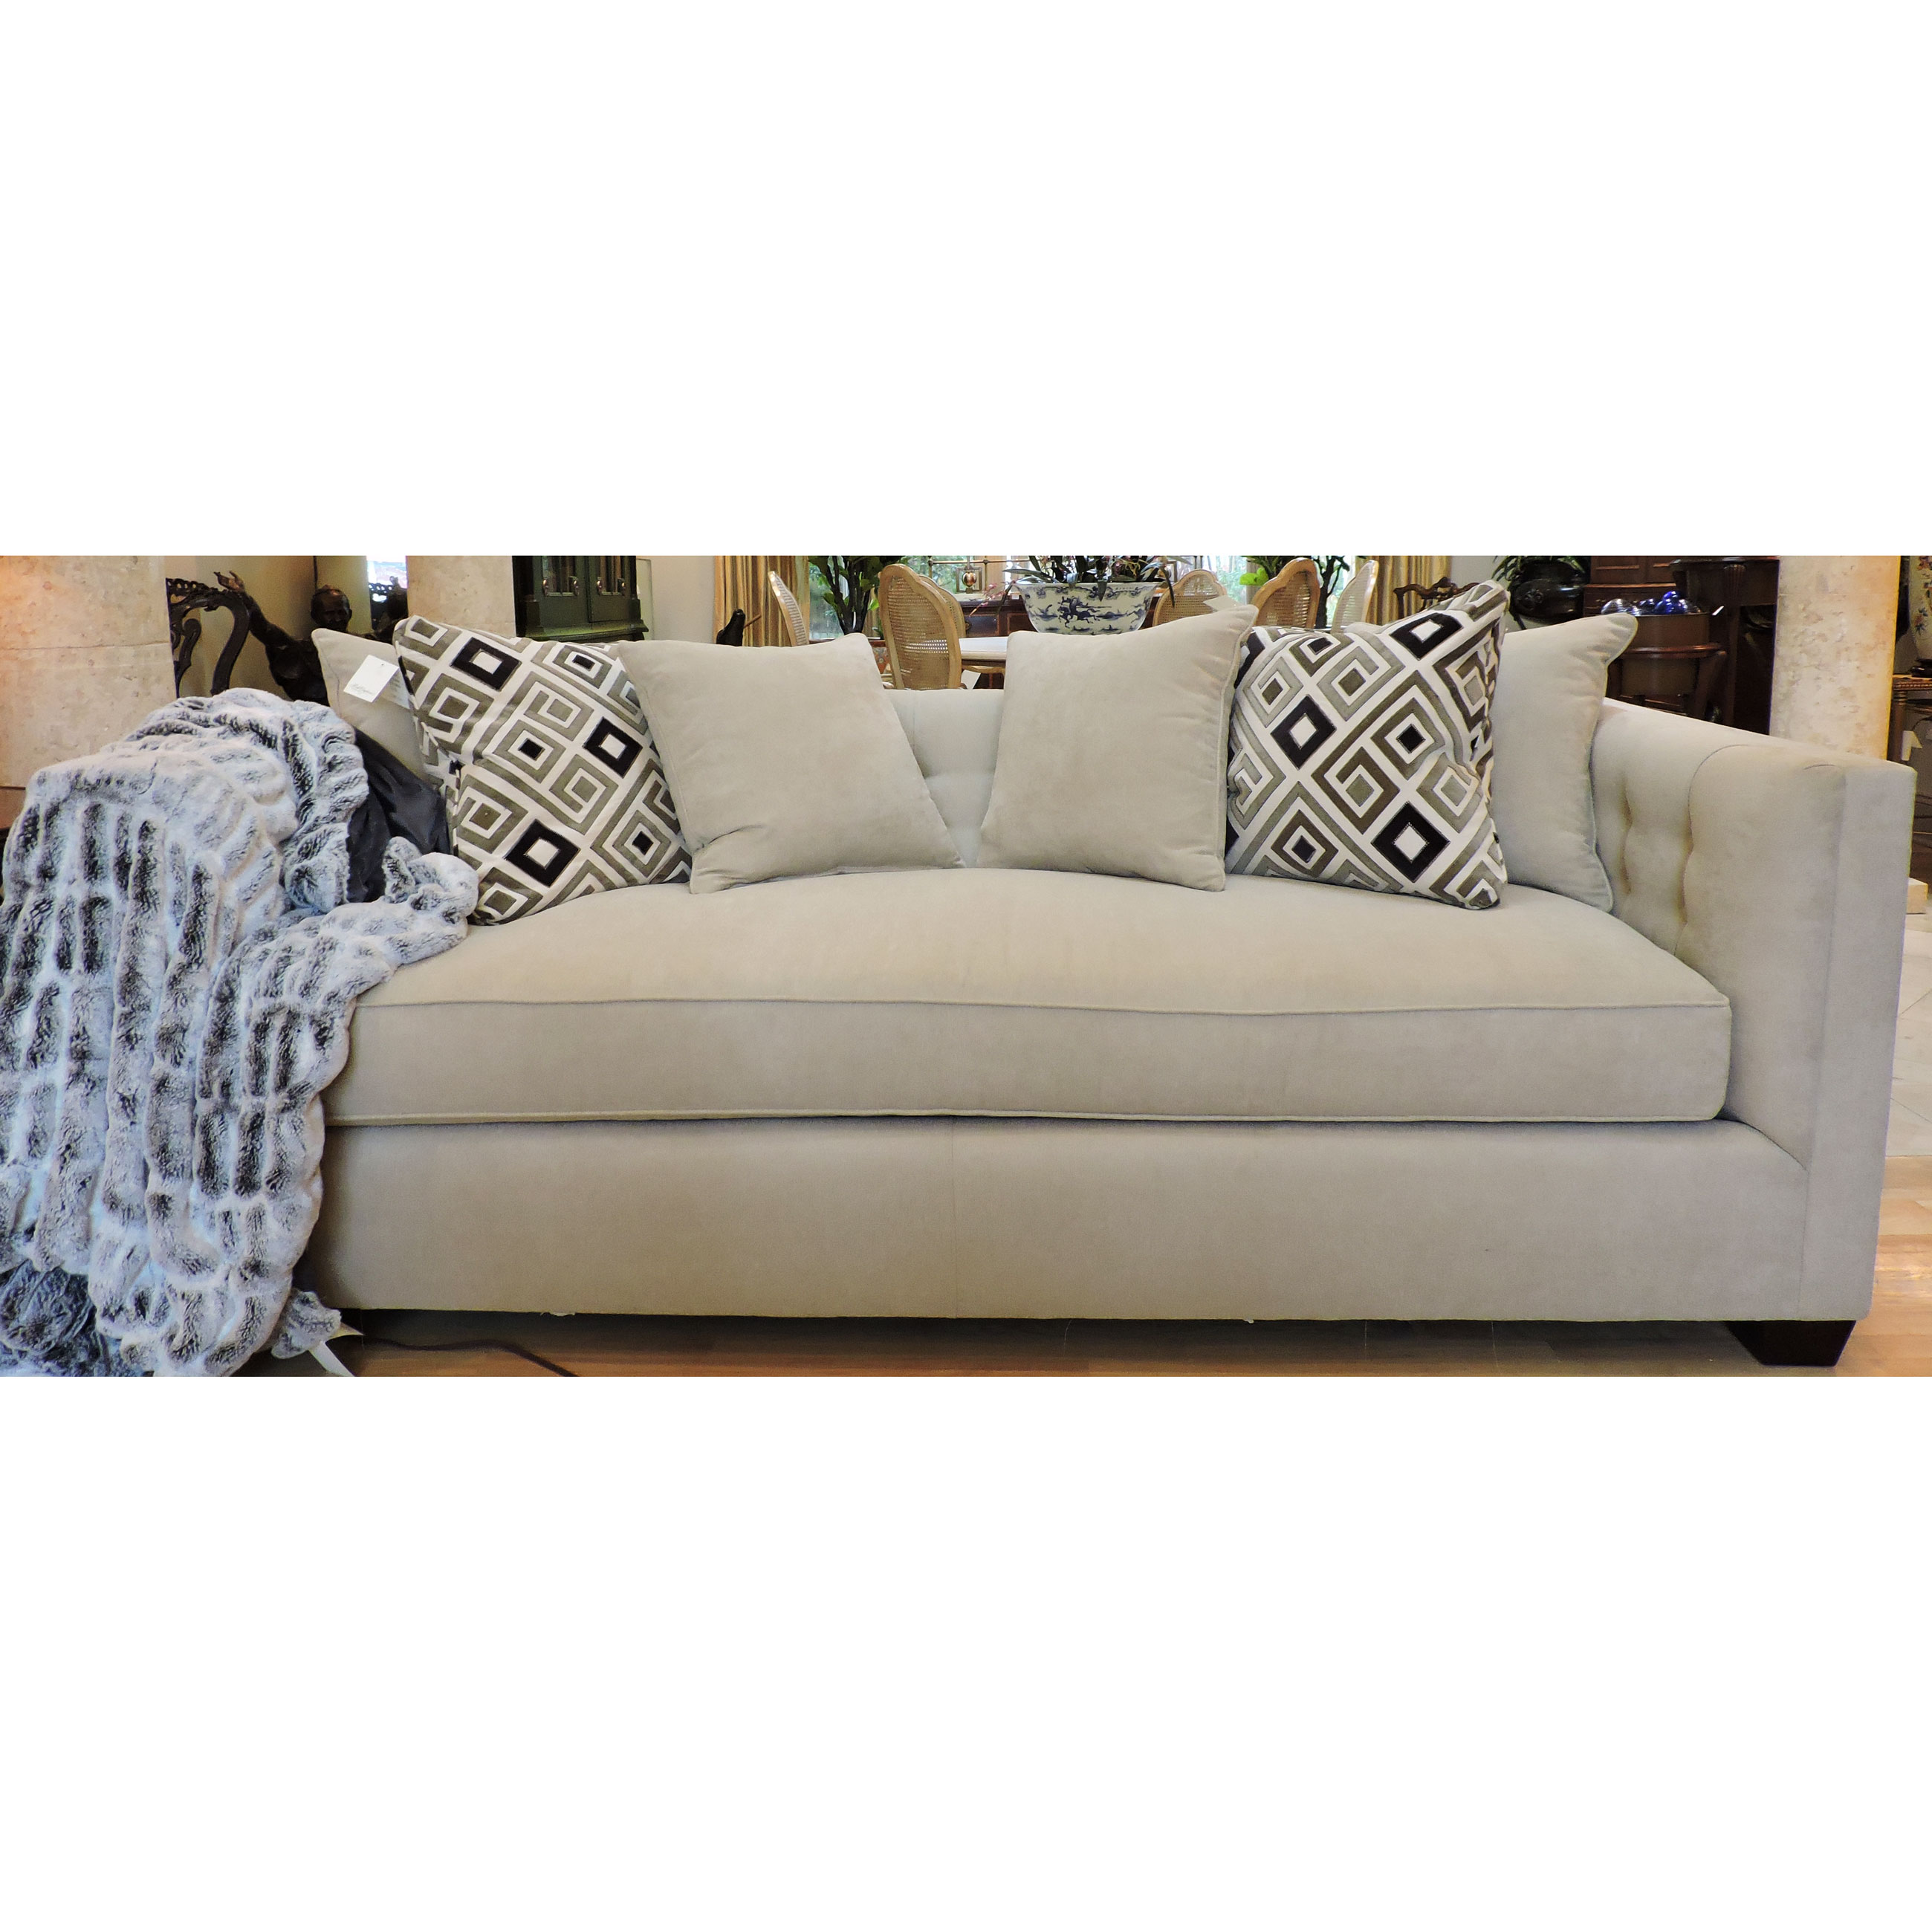 single cushion sofa pros and cons cheap outdoor beth claybourn interiors